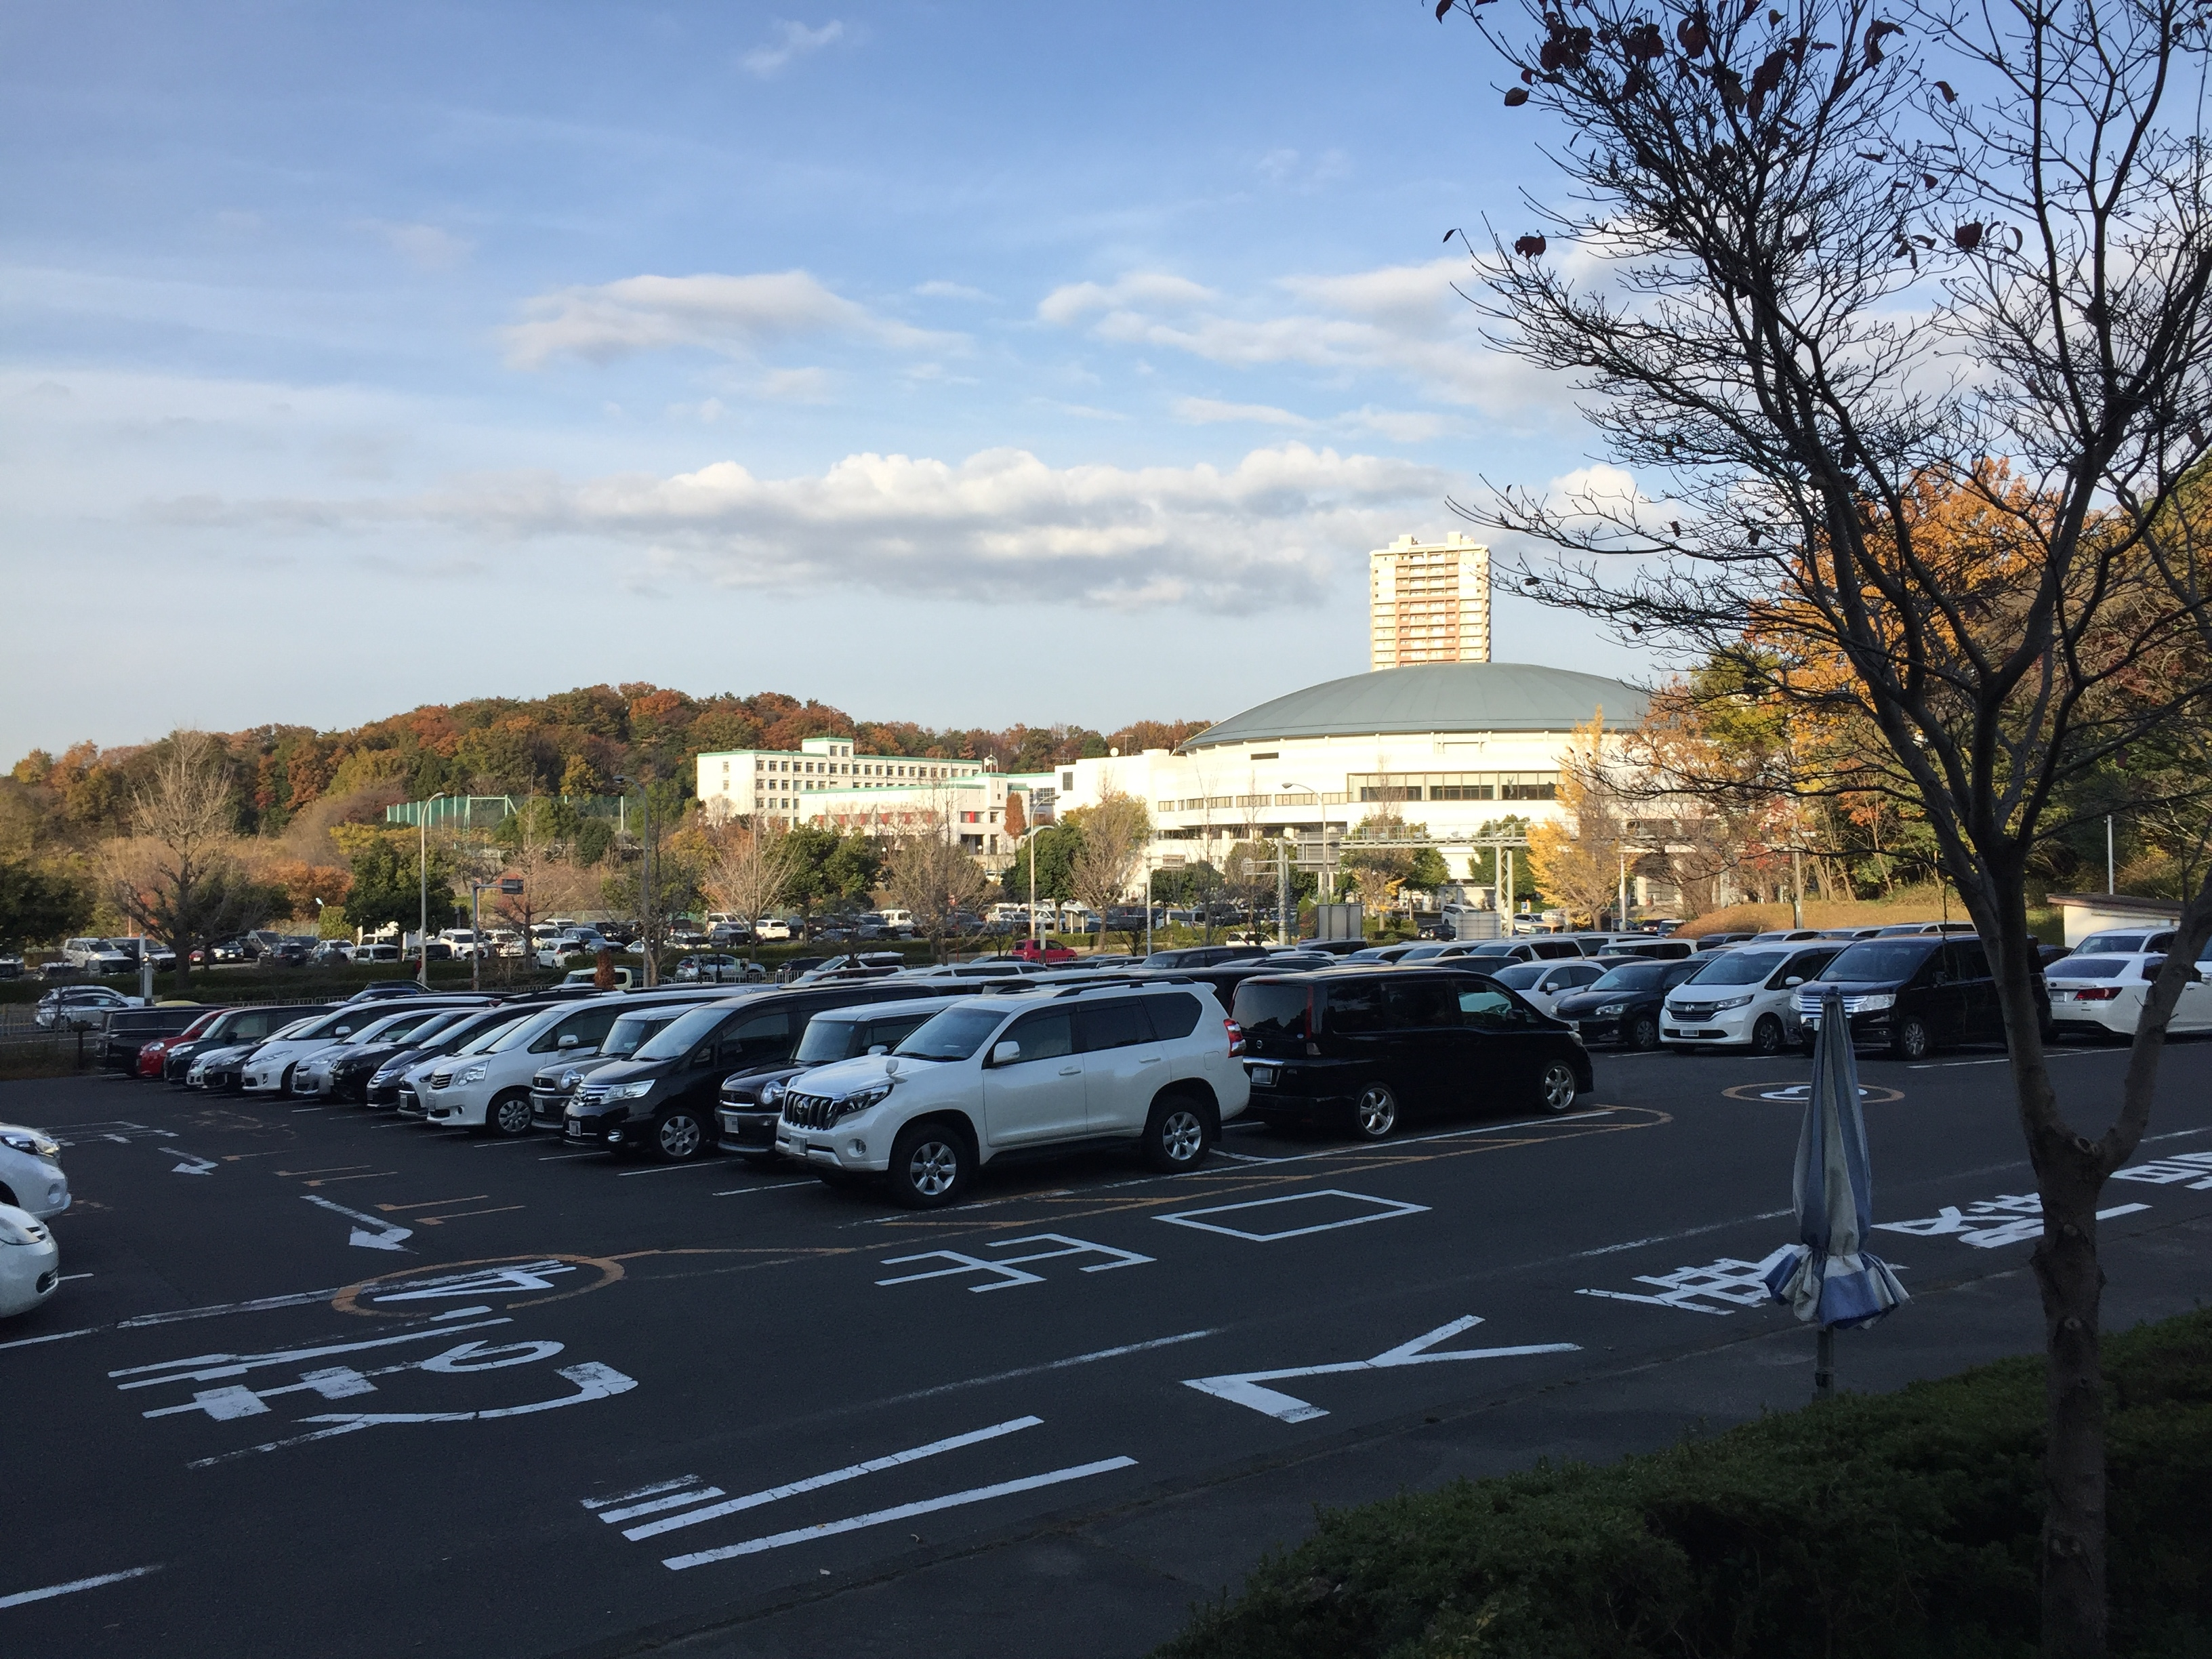 higashiyama-zoo-parking